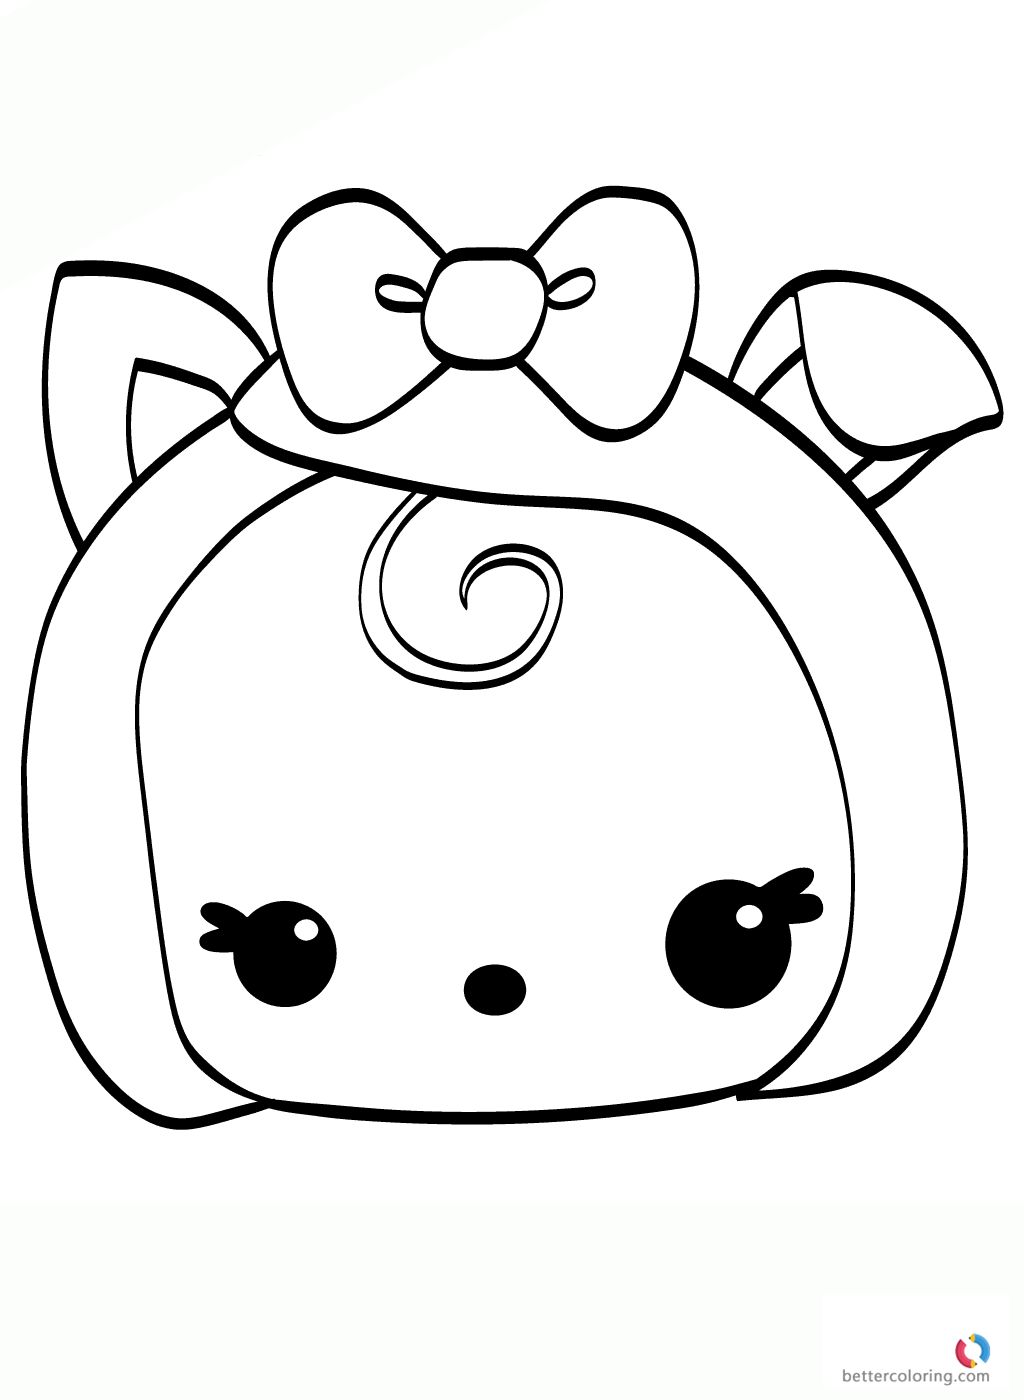 Num noms coloring sheets becca bacon free printable for Num noms coloring pages free